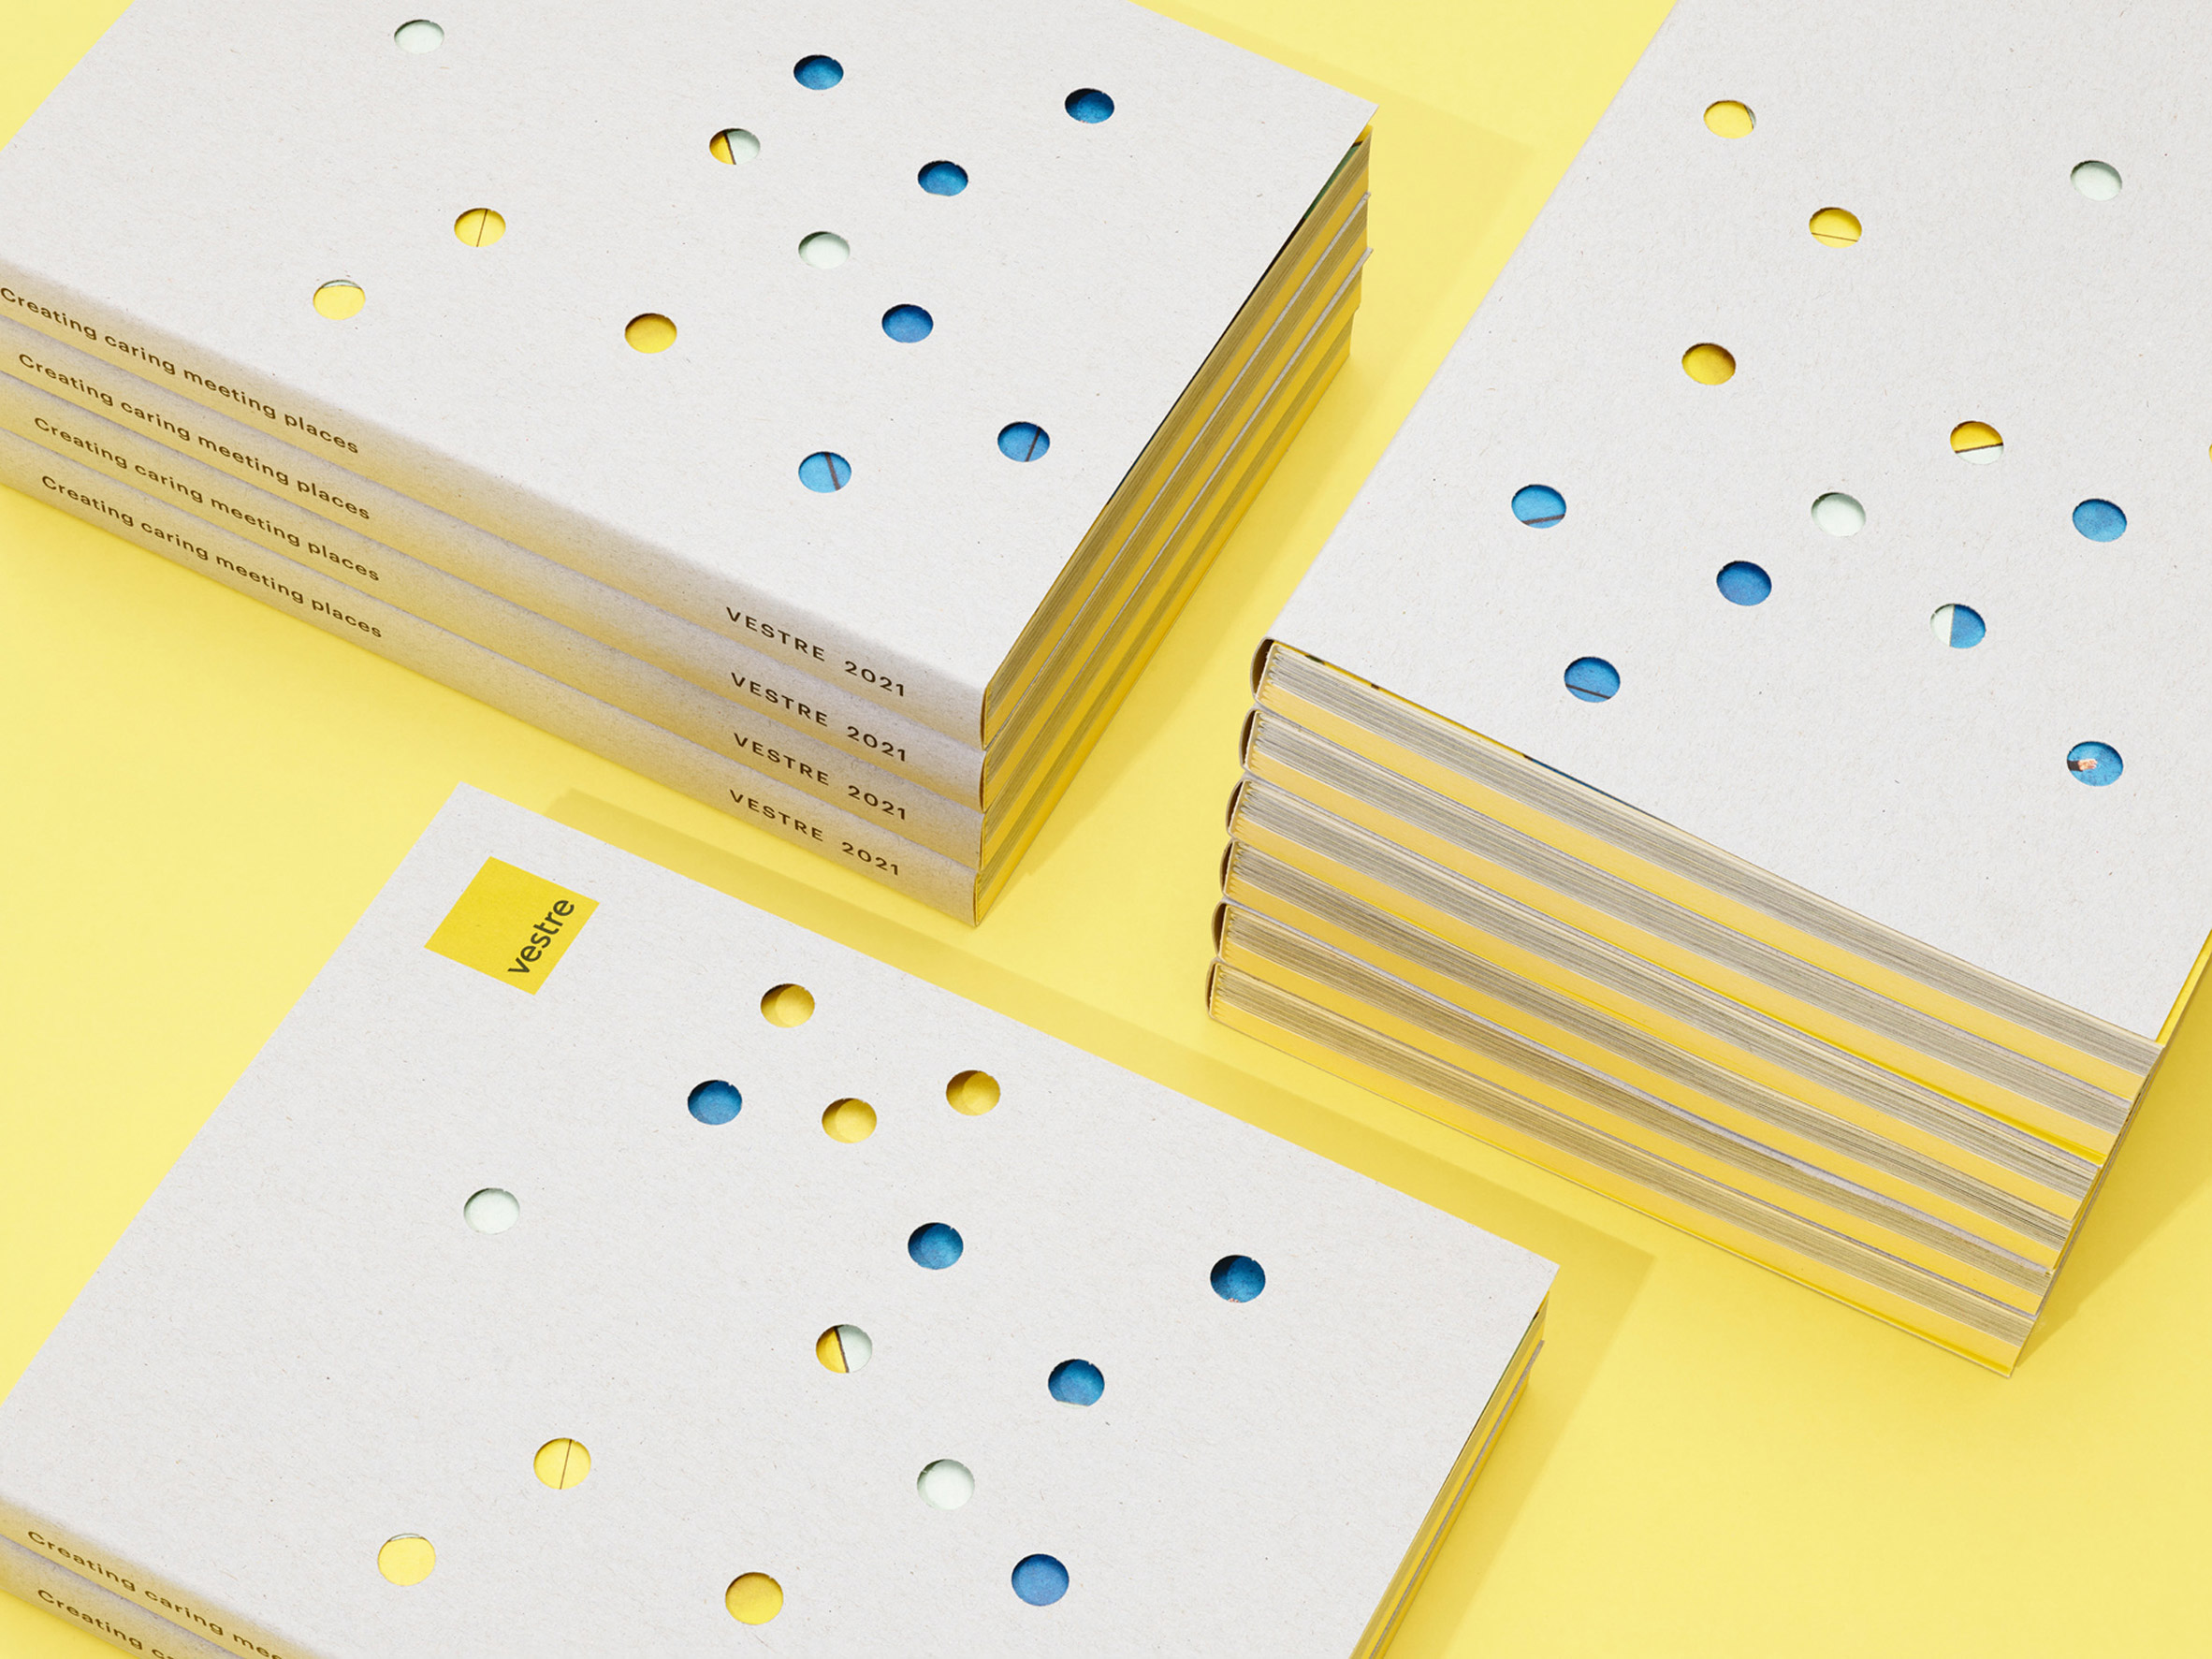 Vestre 2021 catalogue printed on FSC-certified paper with round cut-outs